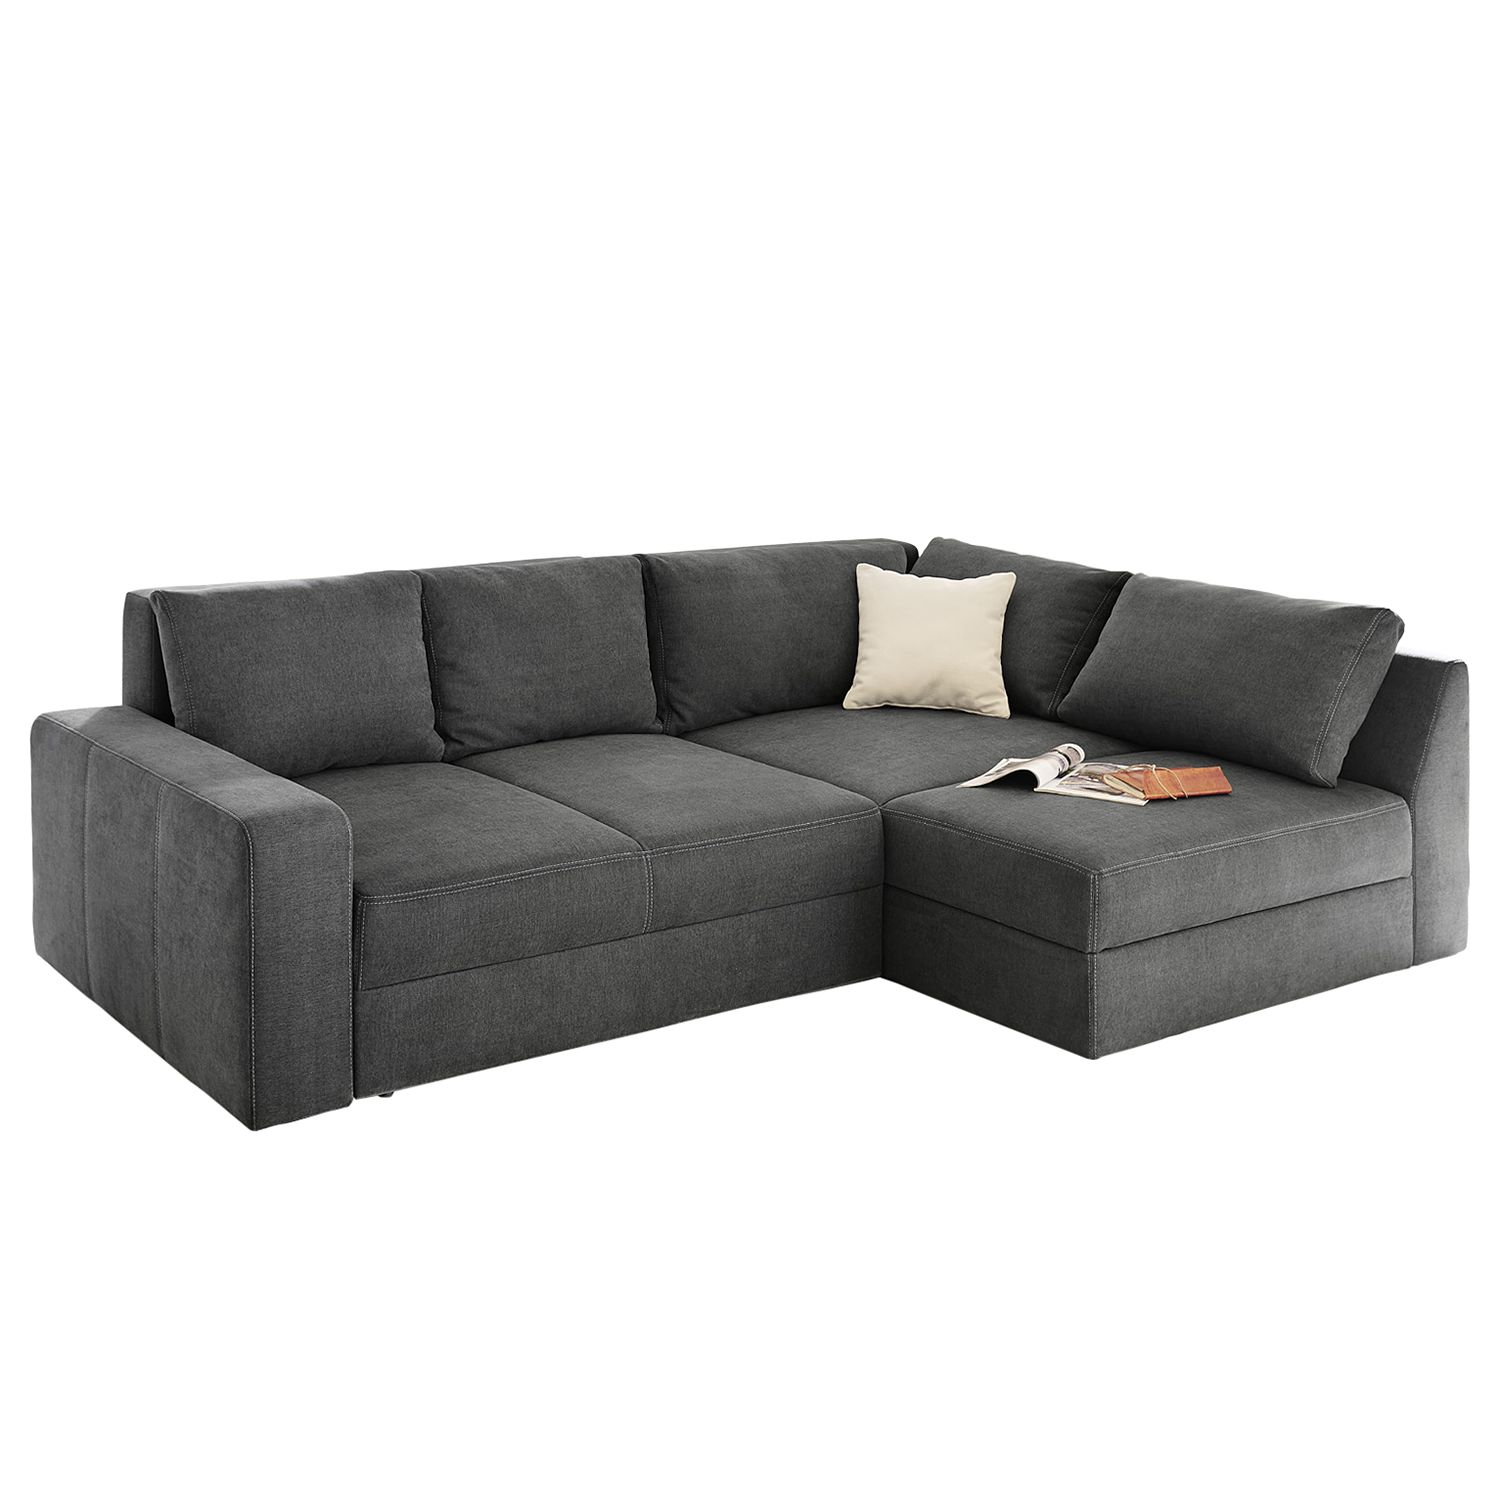 ecksofa mit schlaffunktion bei roller inspirierendes design f r wohnm bel. Black Bedroom Furniture Sets. Home Design Ideas